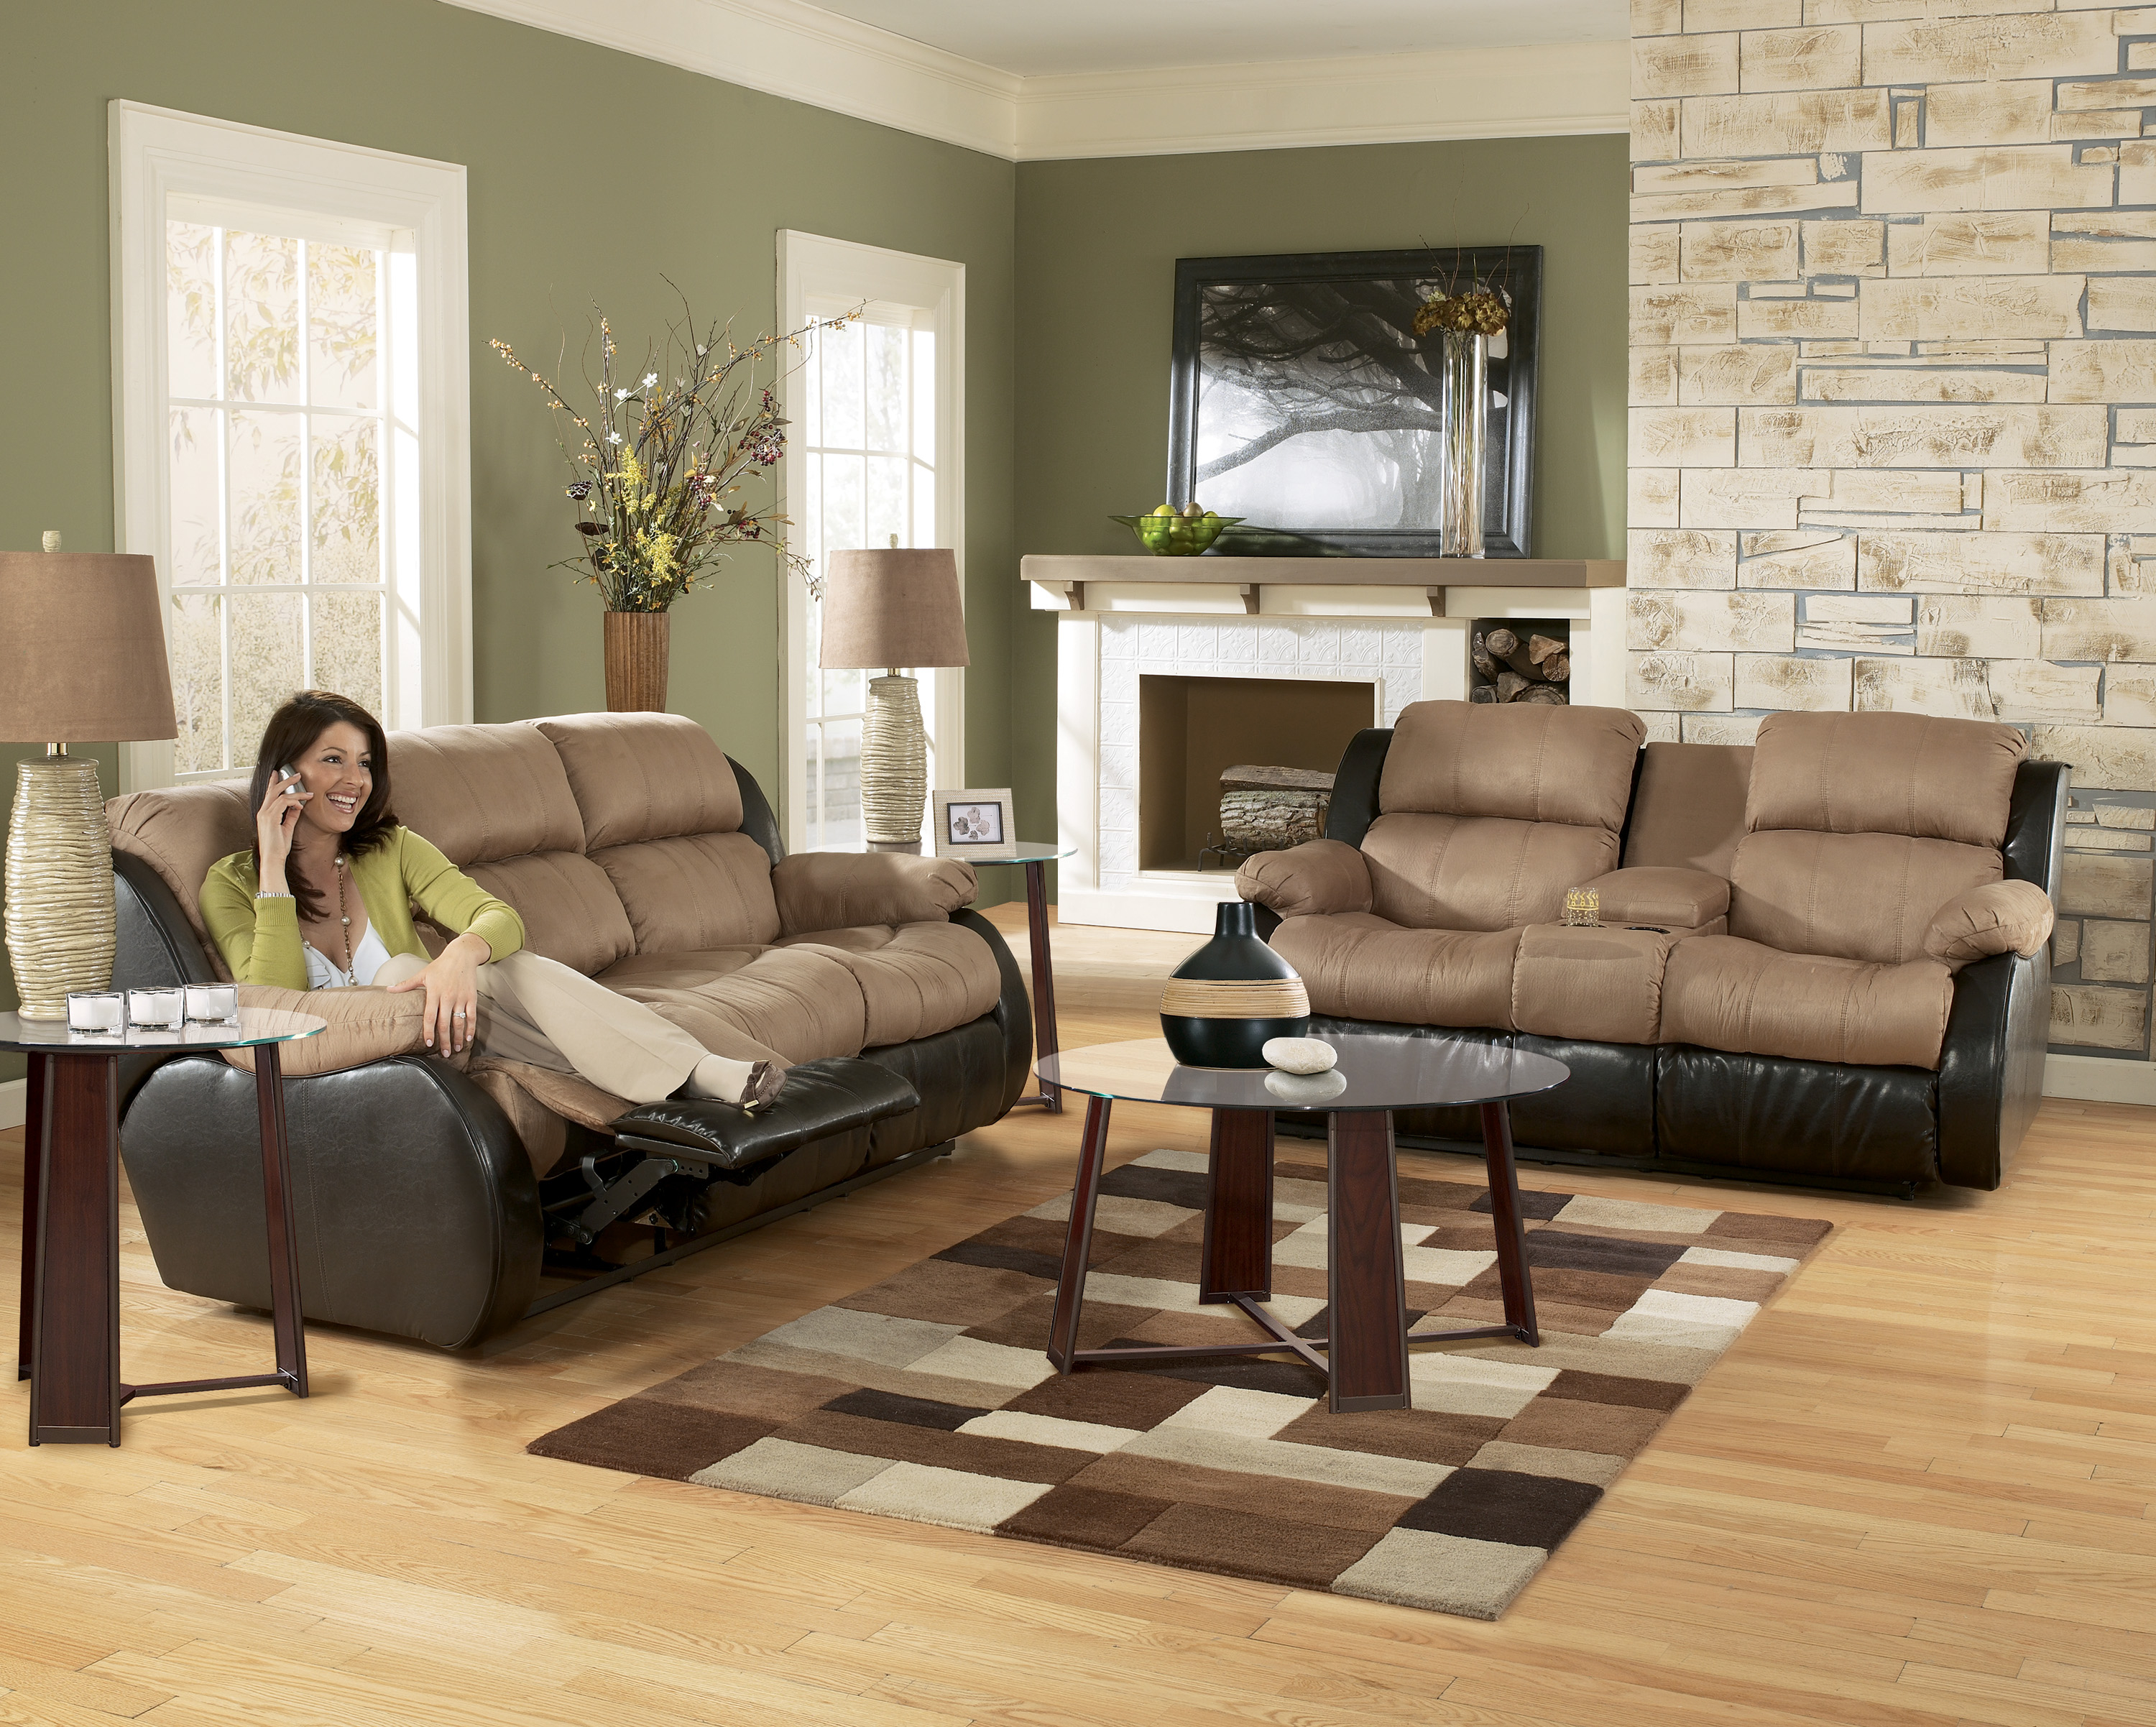 Ashley Furniture Living Room Sets Choice 2019 House Of All Furniture regarding 14 Some of the Coolest Designs of How to Improve Buy Living Room Set